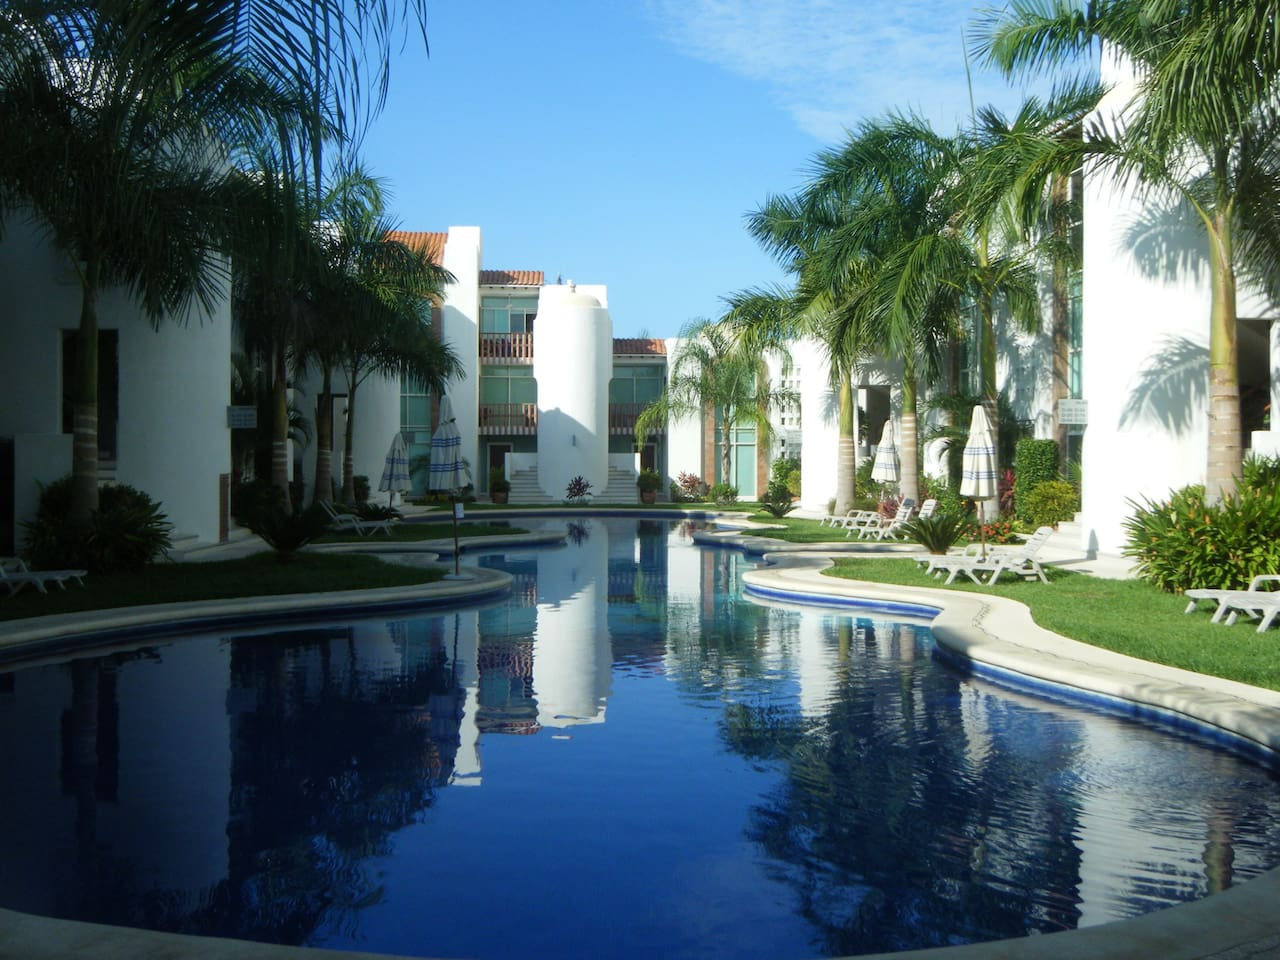 Condo units and pool area